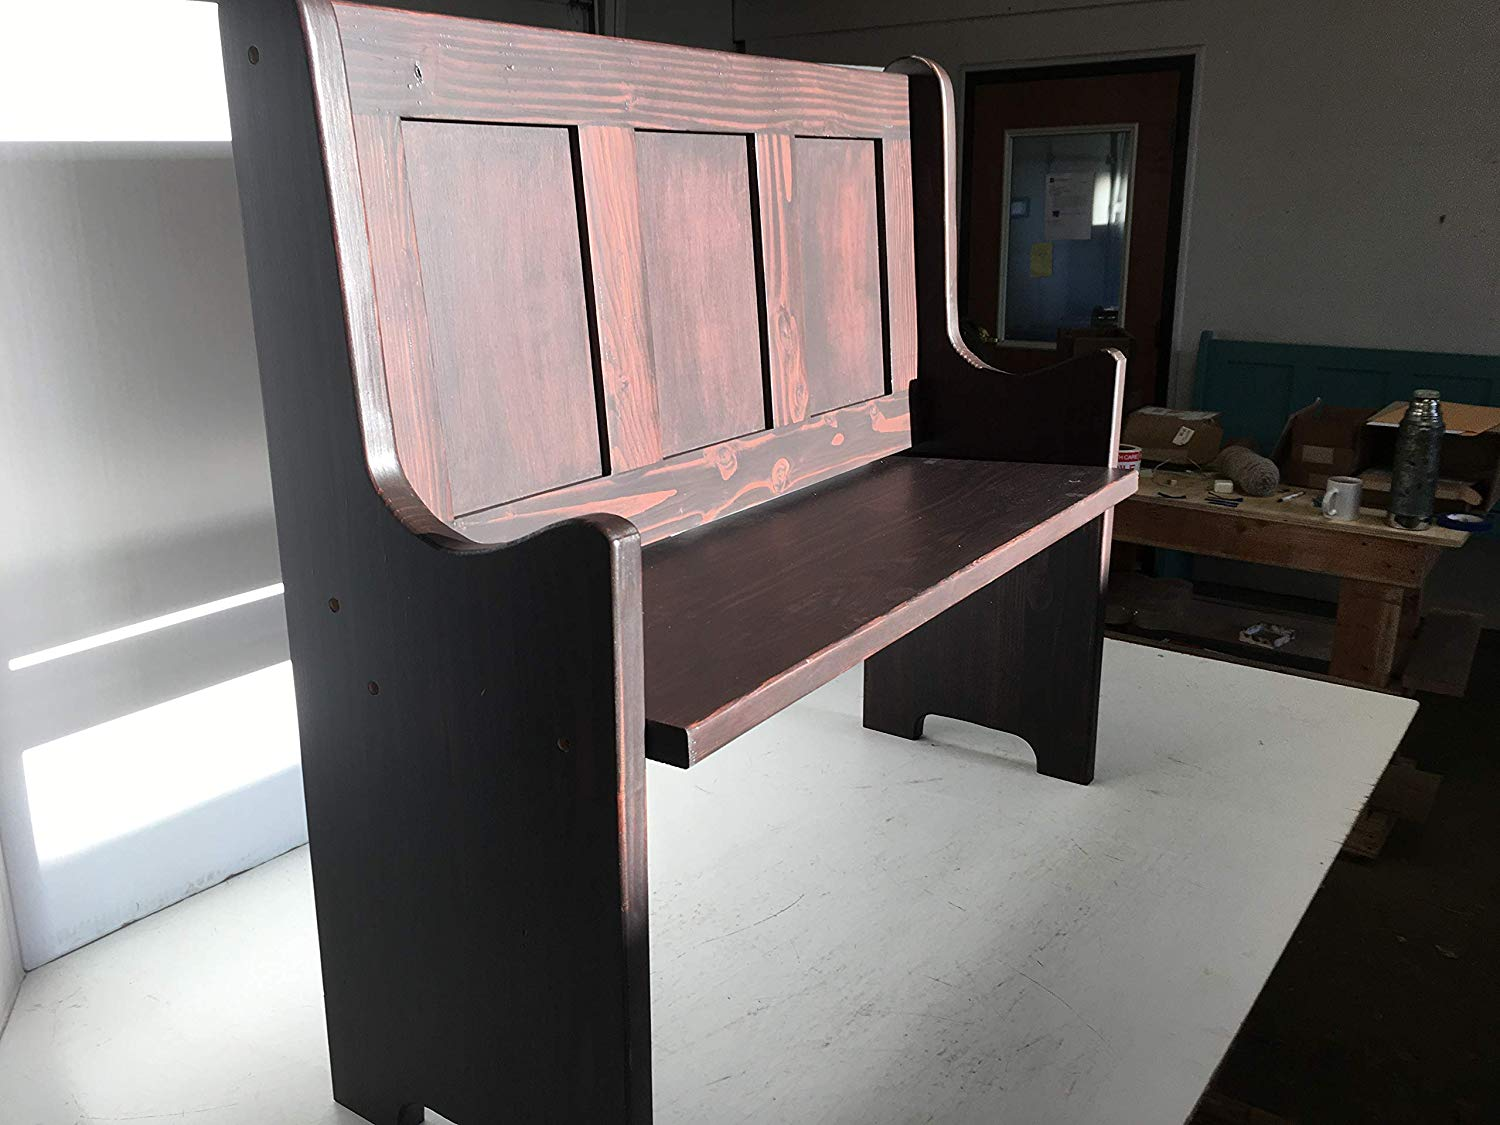 Farmhouse Entryway Bench   Shaker design all function wood bench we call a seat bench. Made from pine and fir and hand stained or painted a color of your option. See the color chart choice of colors in our images and include your option in your order.